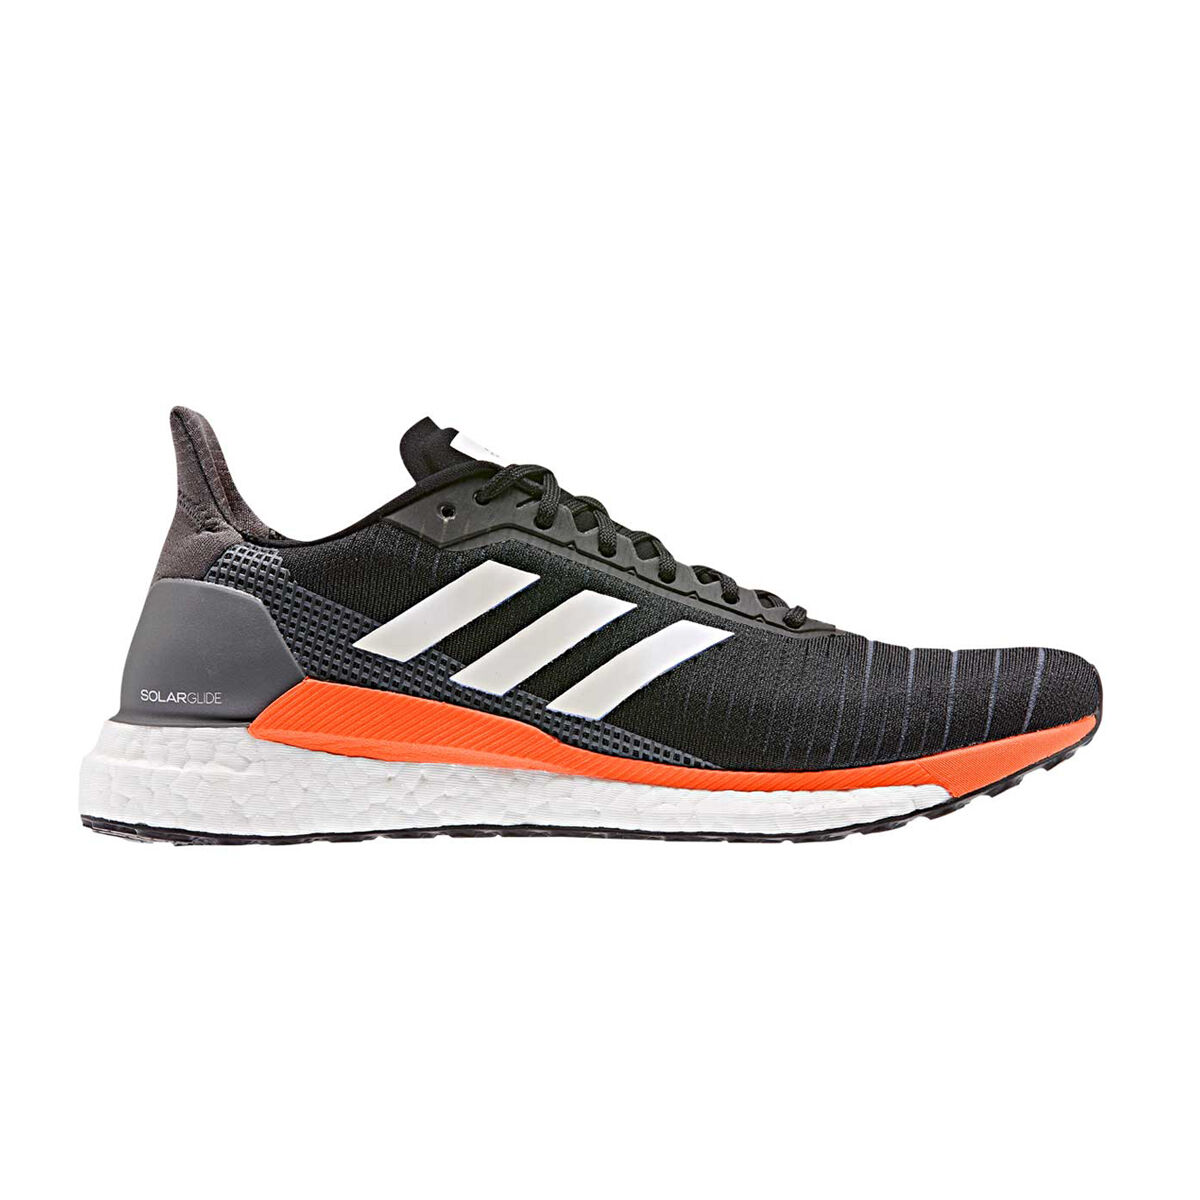 Adidas Supernova Glide Boost 8 | Best Prices & Reviews